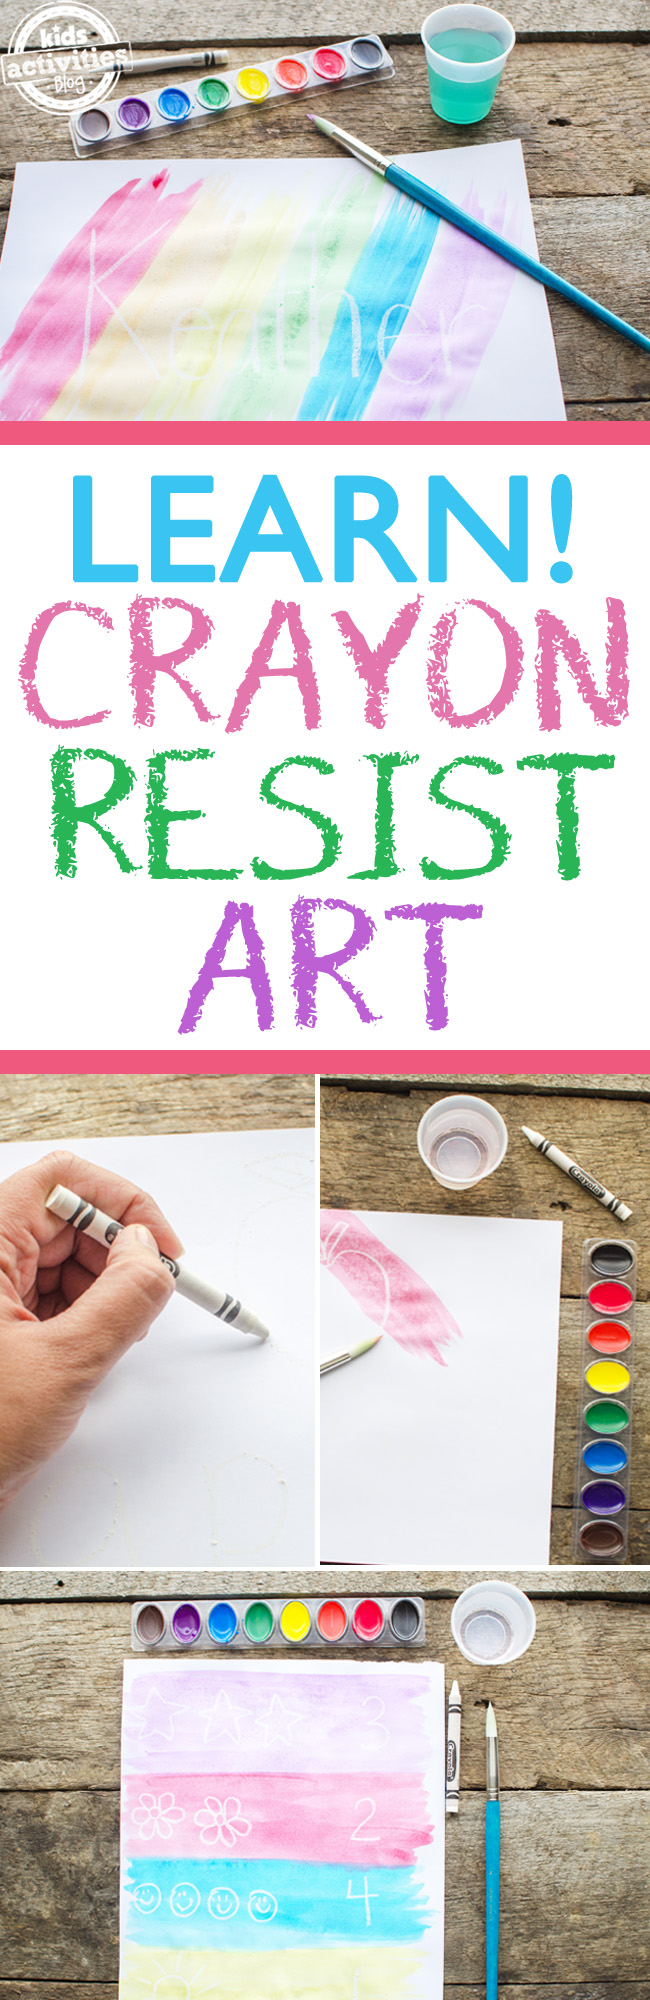 Kids Crayon Resist Art